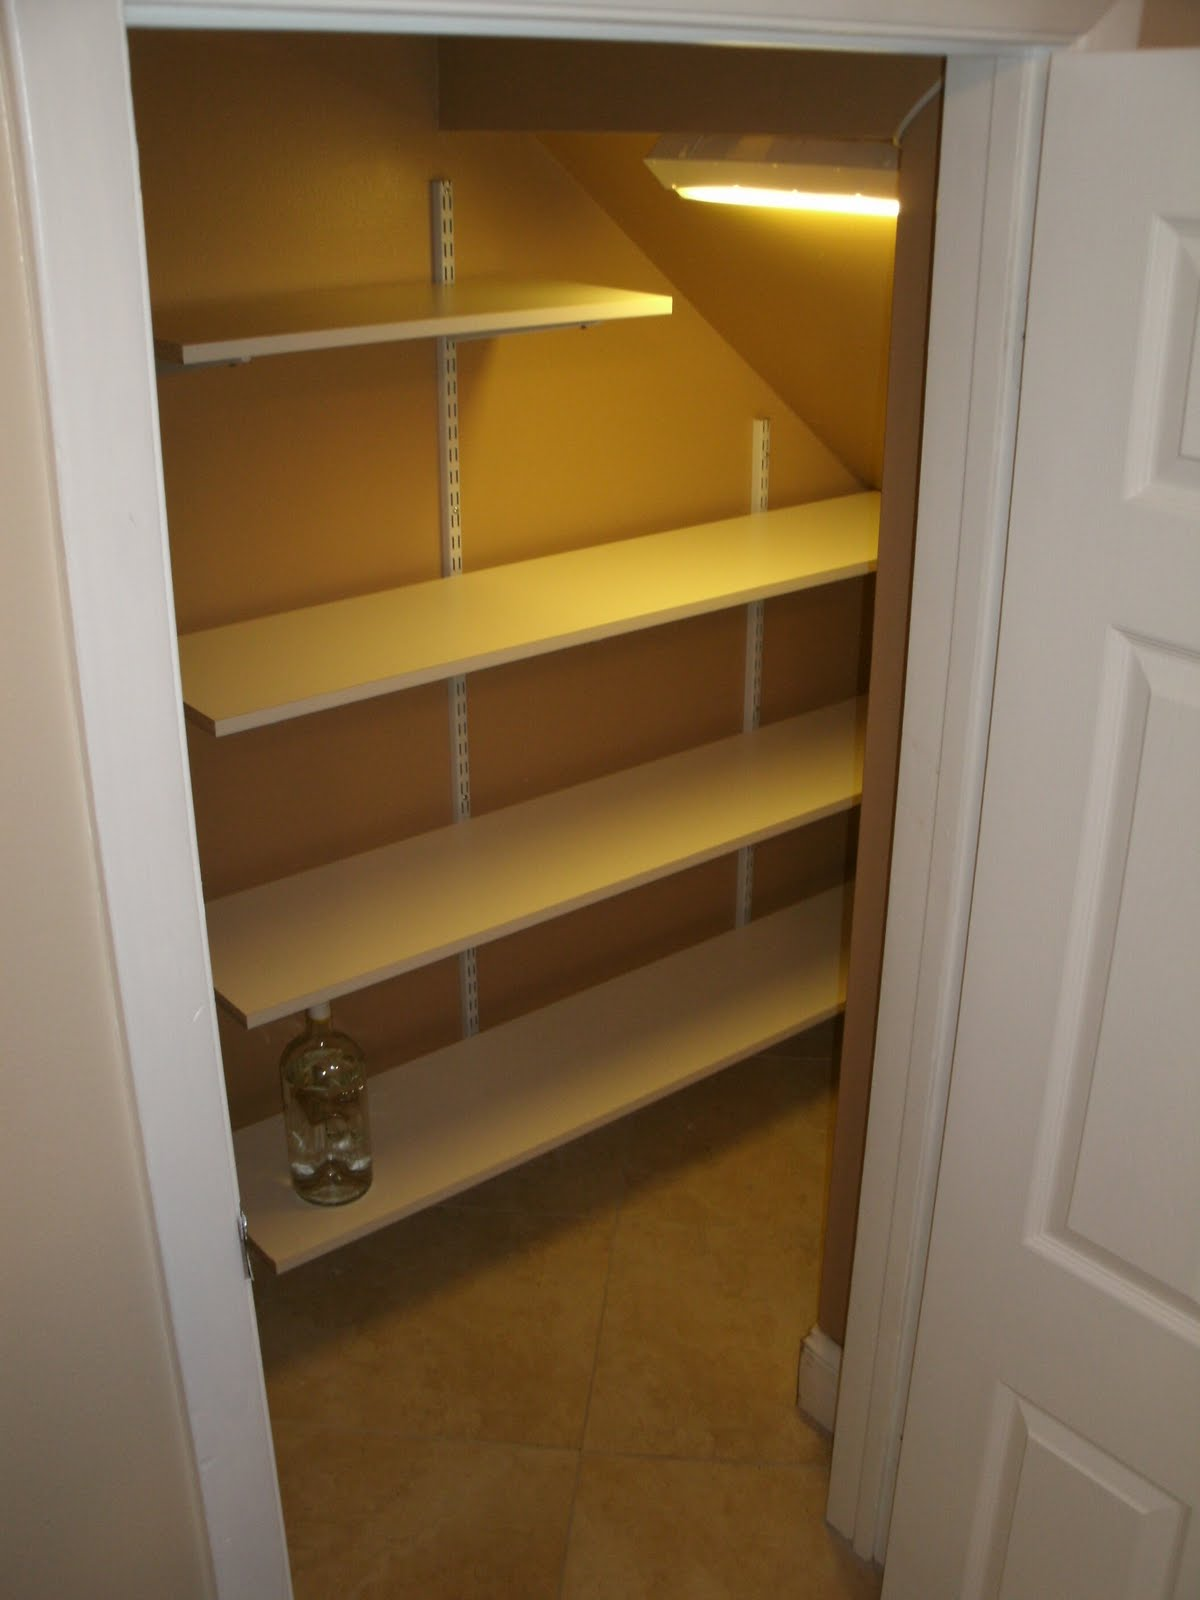 Design Closet Under Stairs shelves for closet under stairs roselawnlutheran new shelving in a small nook handyman extraordinaire